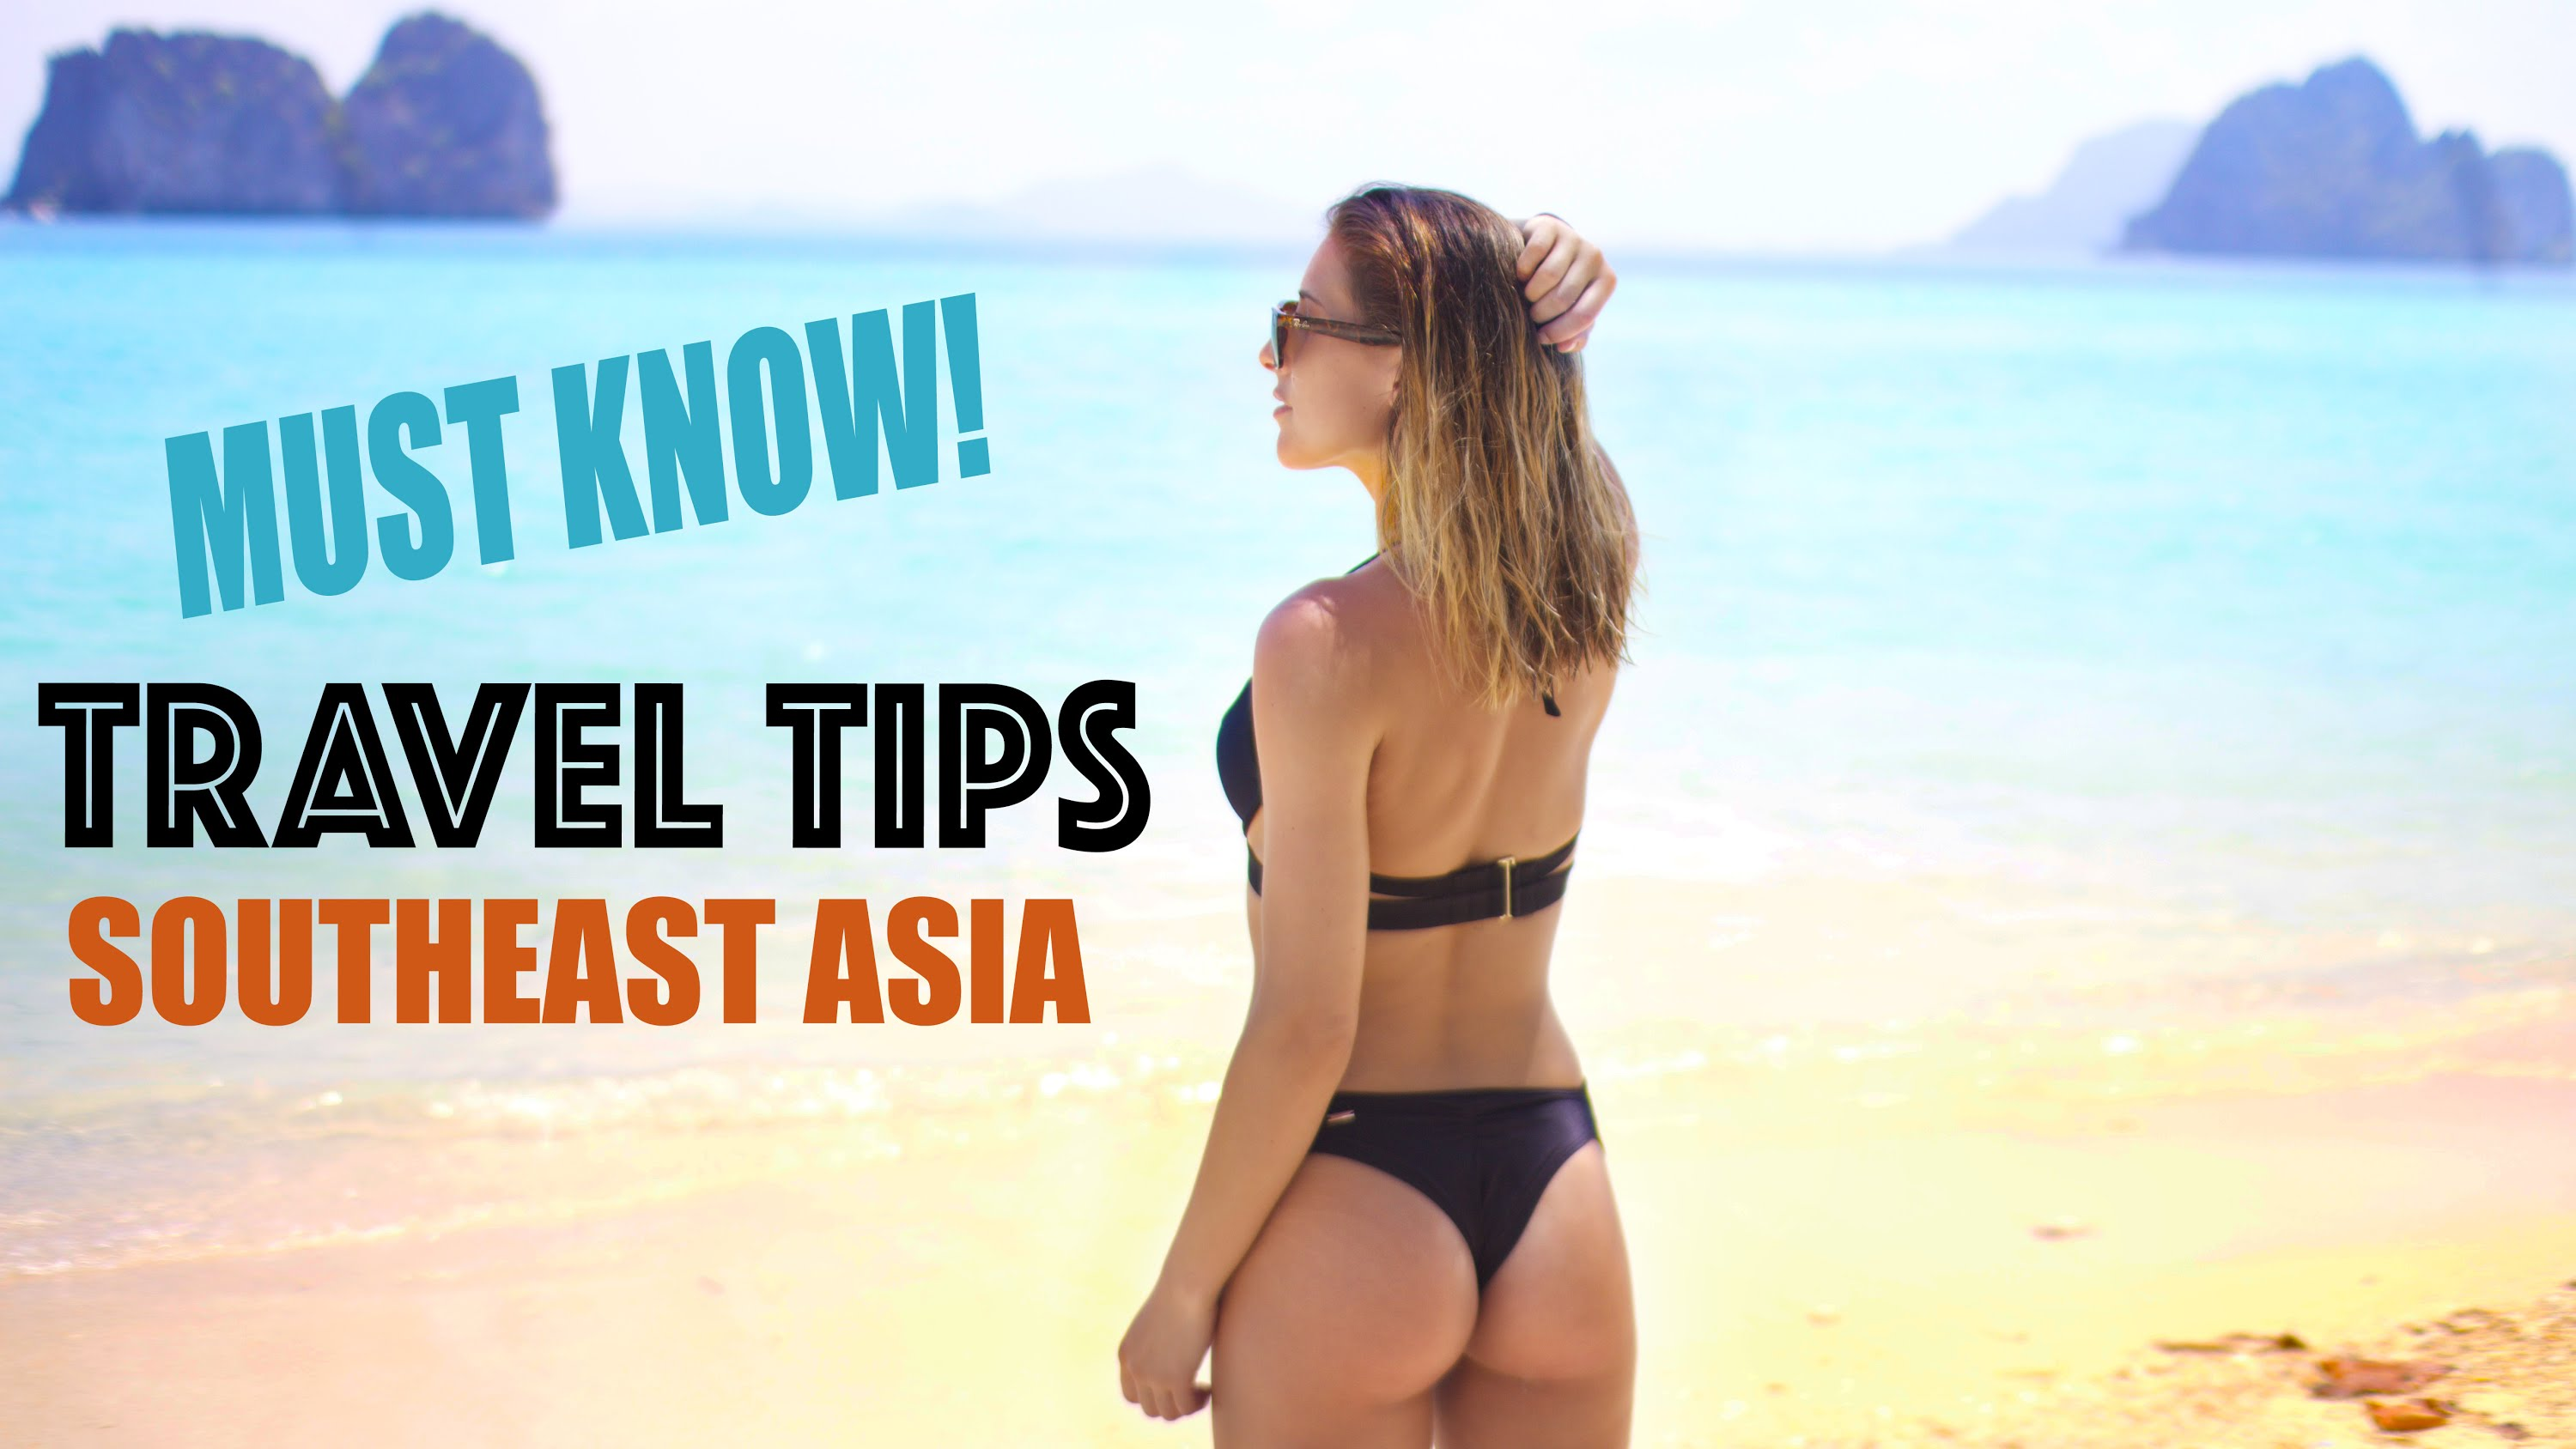 Travel Tips & Guide to Southeast Asia